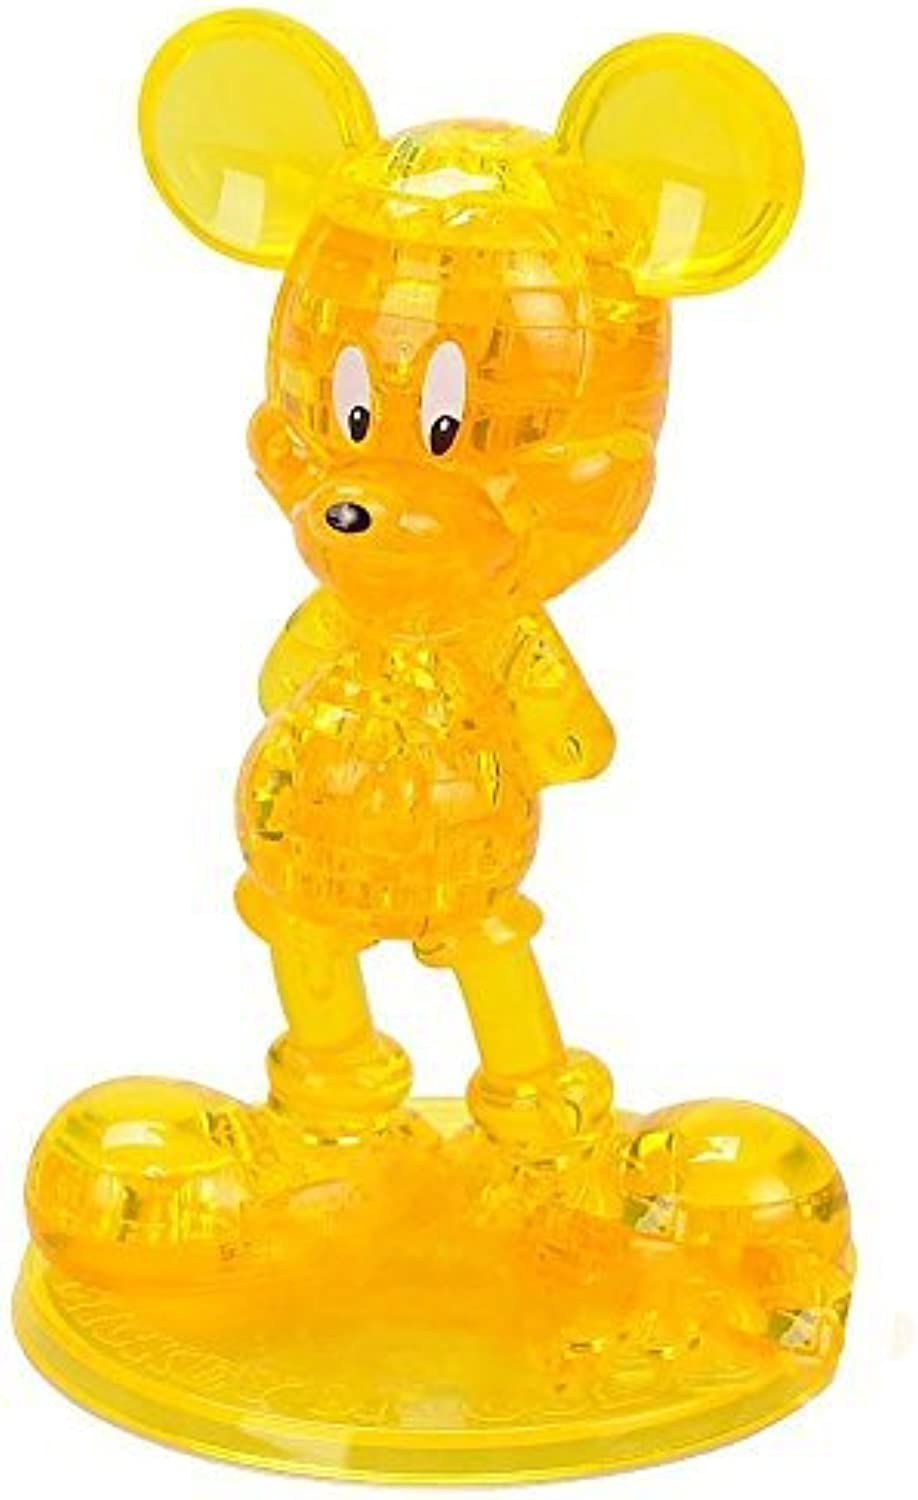 45 piece Original 3D Crystal Puzzle  Yellow by CP